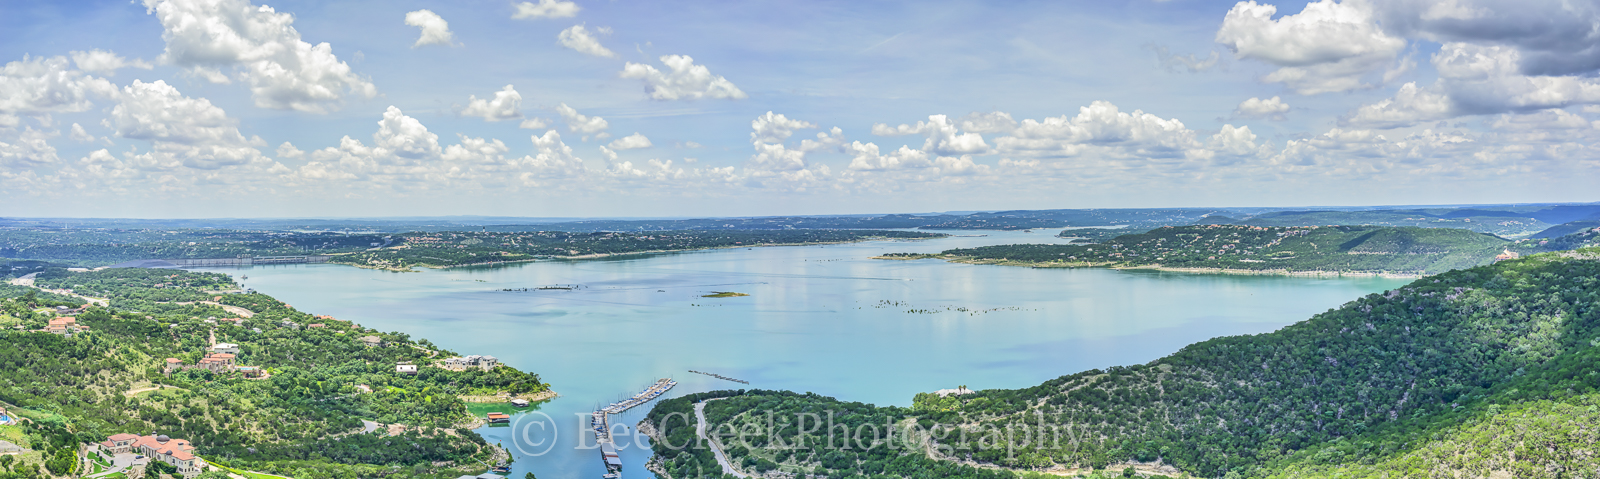 Austin, Lake Travis, aerial image, boats, dam, flood, pano, panorama, puffy clouds, sunshine, water, photo